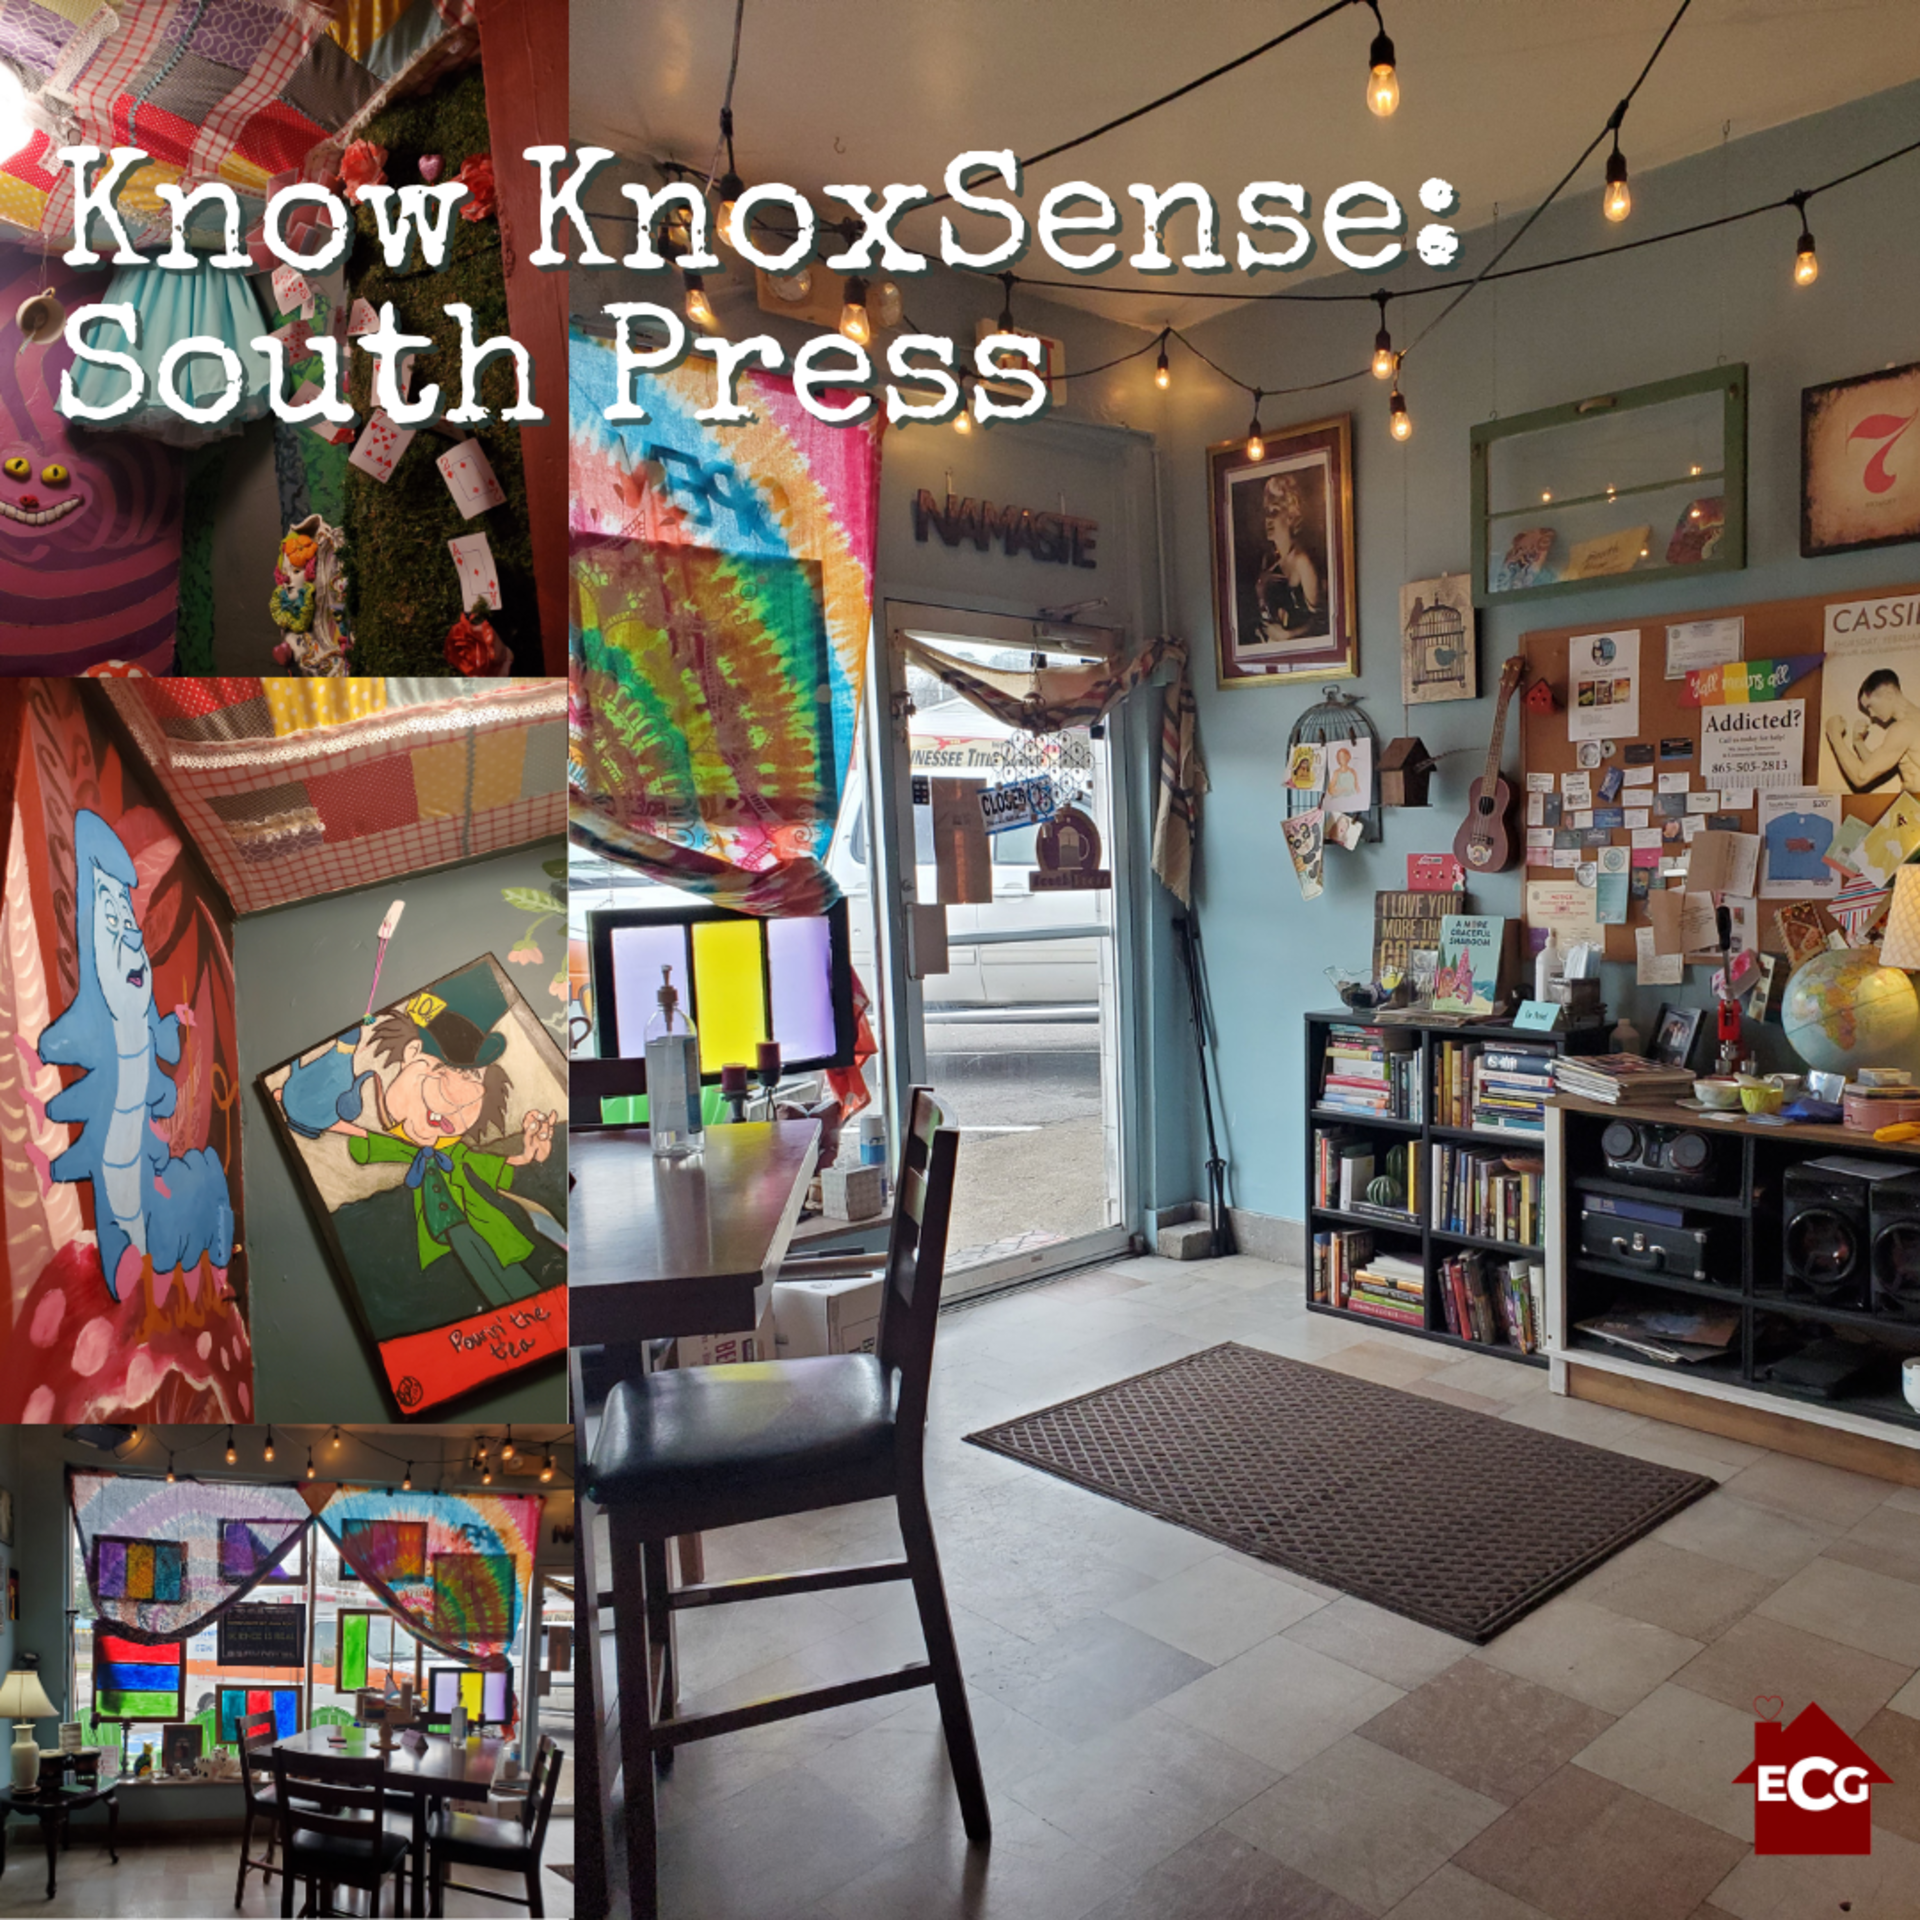 Know Knoxsense: South Press